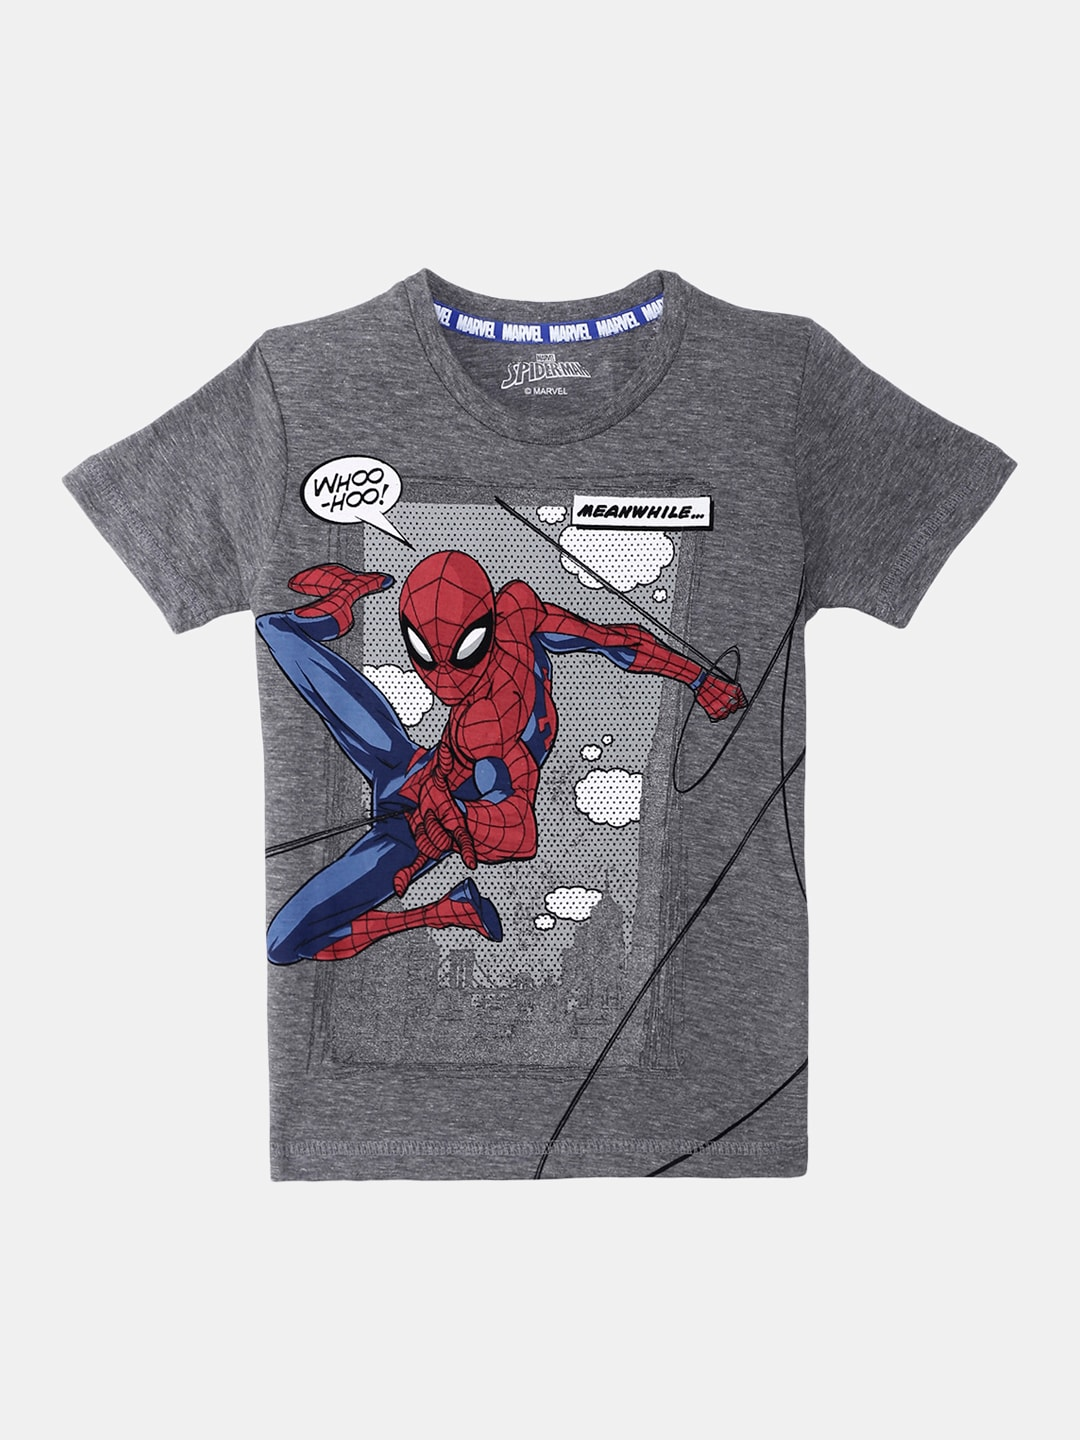 6b8a55083 Spiderman - Buy Spiderman Accessories for Kids Online in India